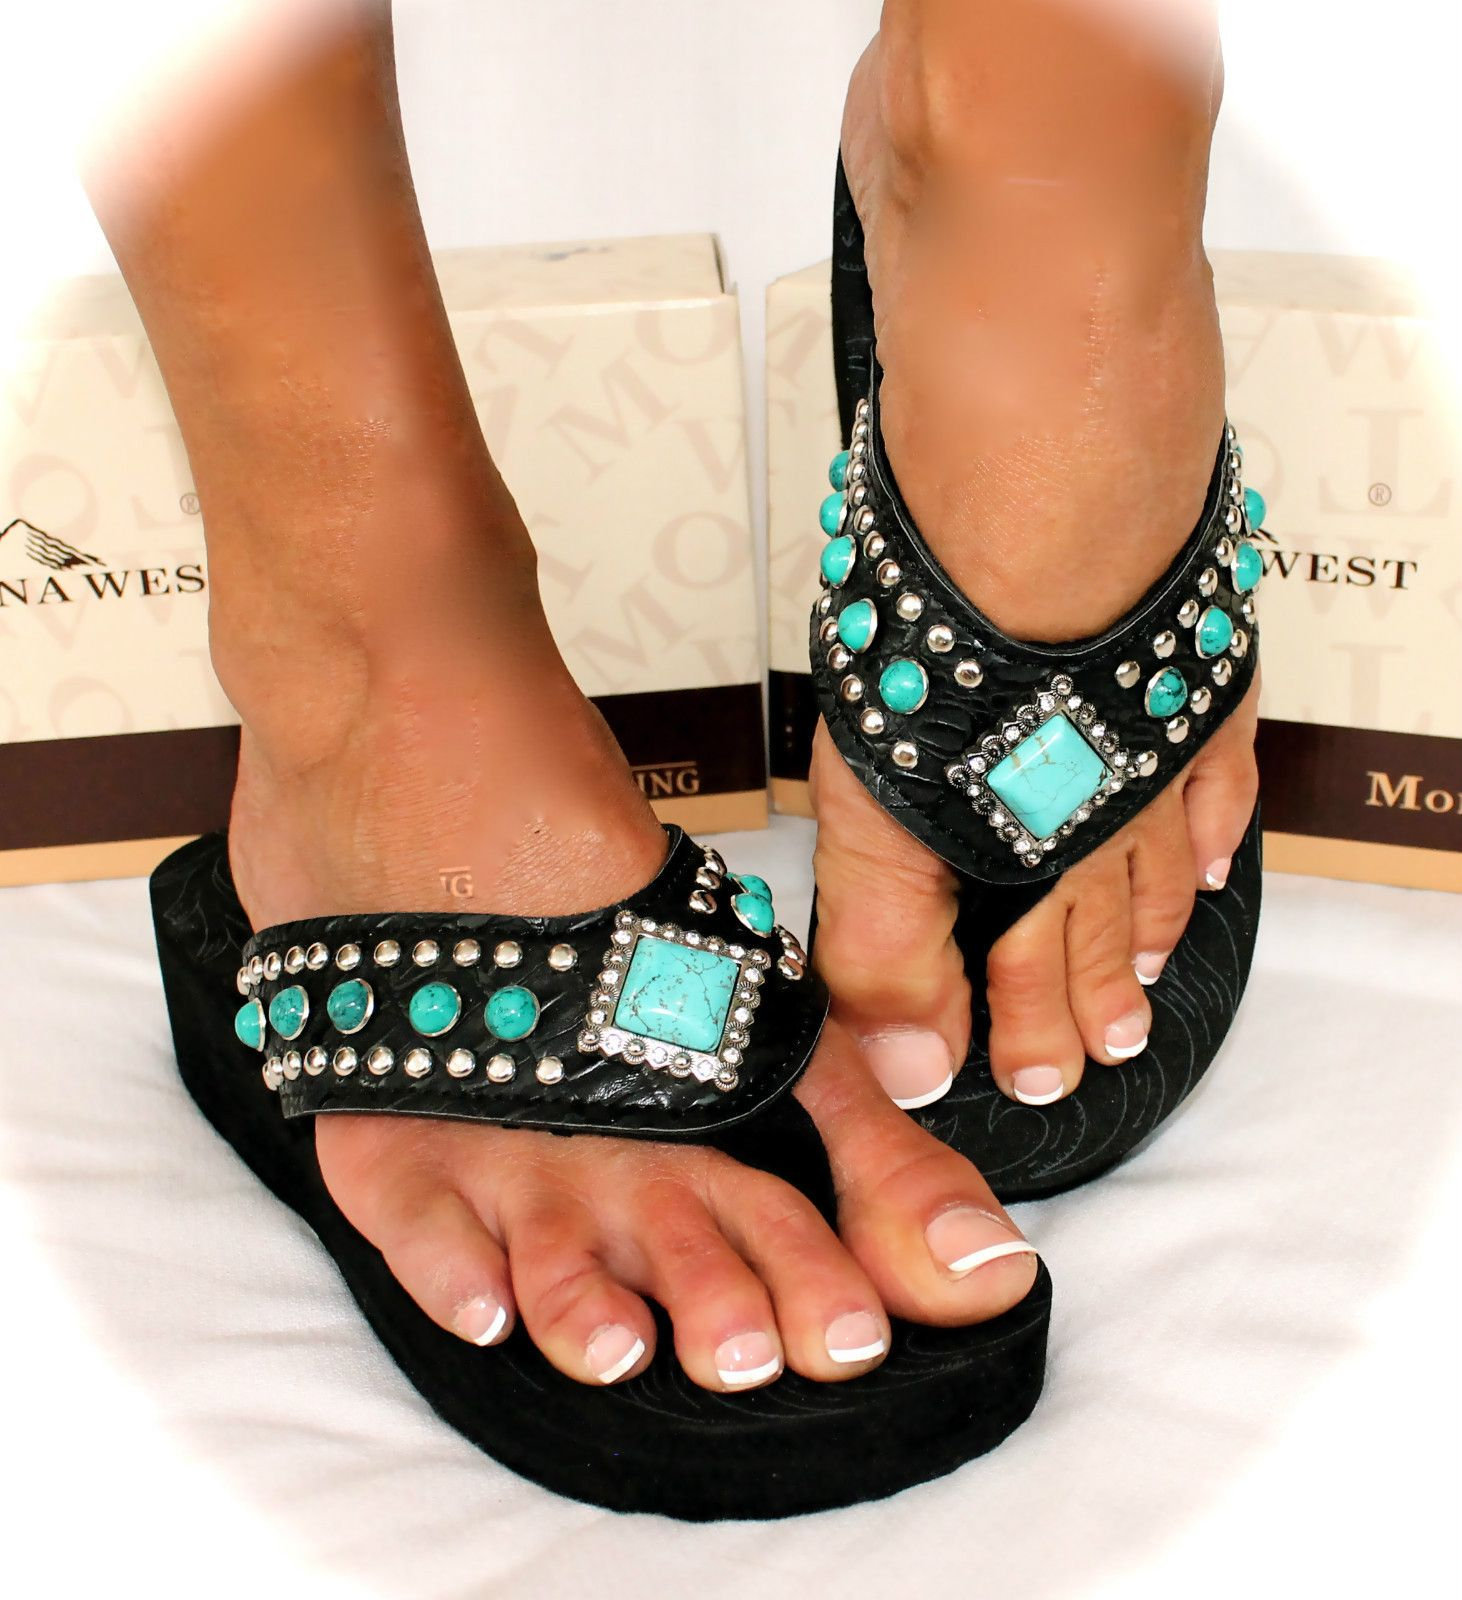 5d7d13fc2 Montana West Turquoise Black Bling Western Foam Wedge Flip Flops All Sizes!